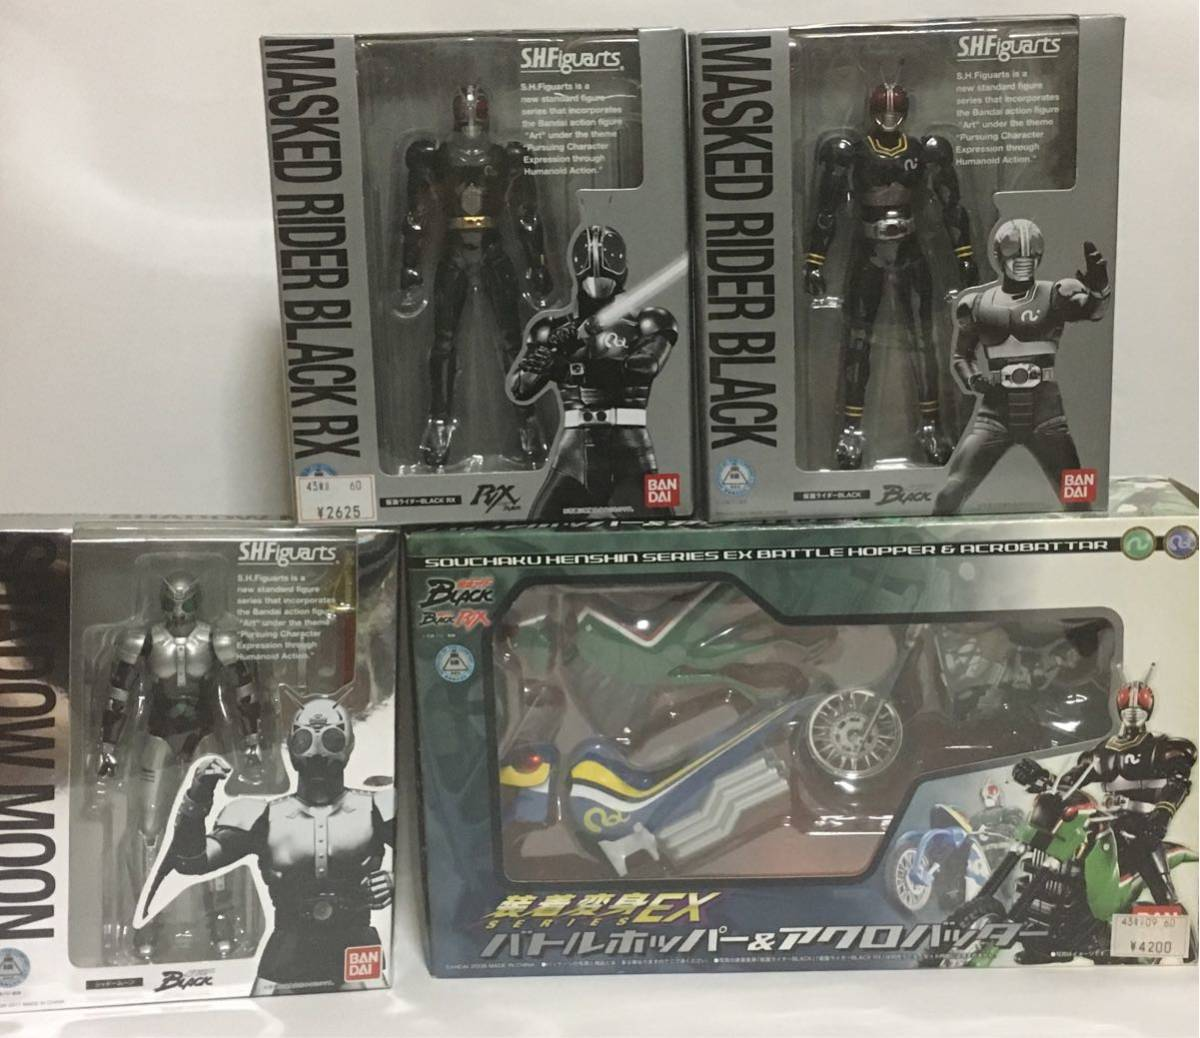 S.H.Figuarts 仮面ライダーBLACK、BLACK RX、シャドームーン、装着変身EXバトルホッパー&アクロバッター 4点セット